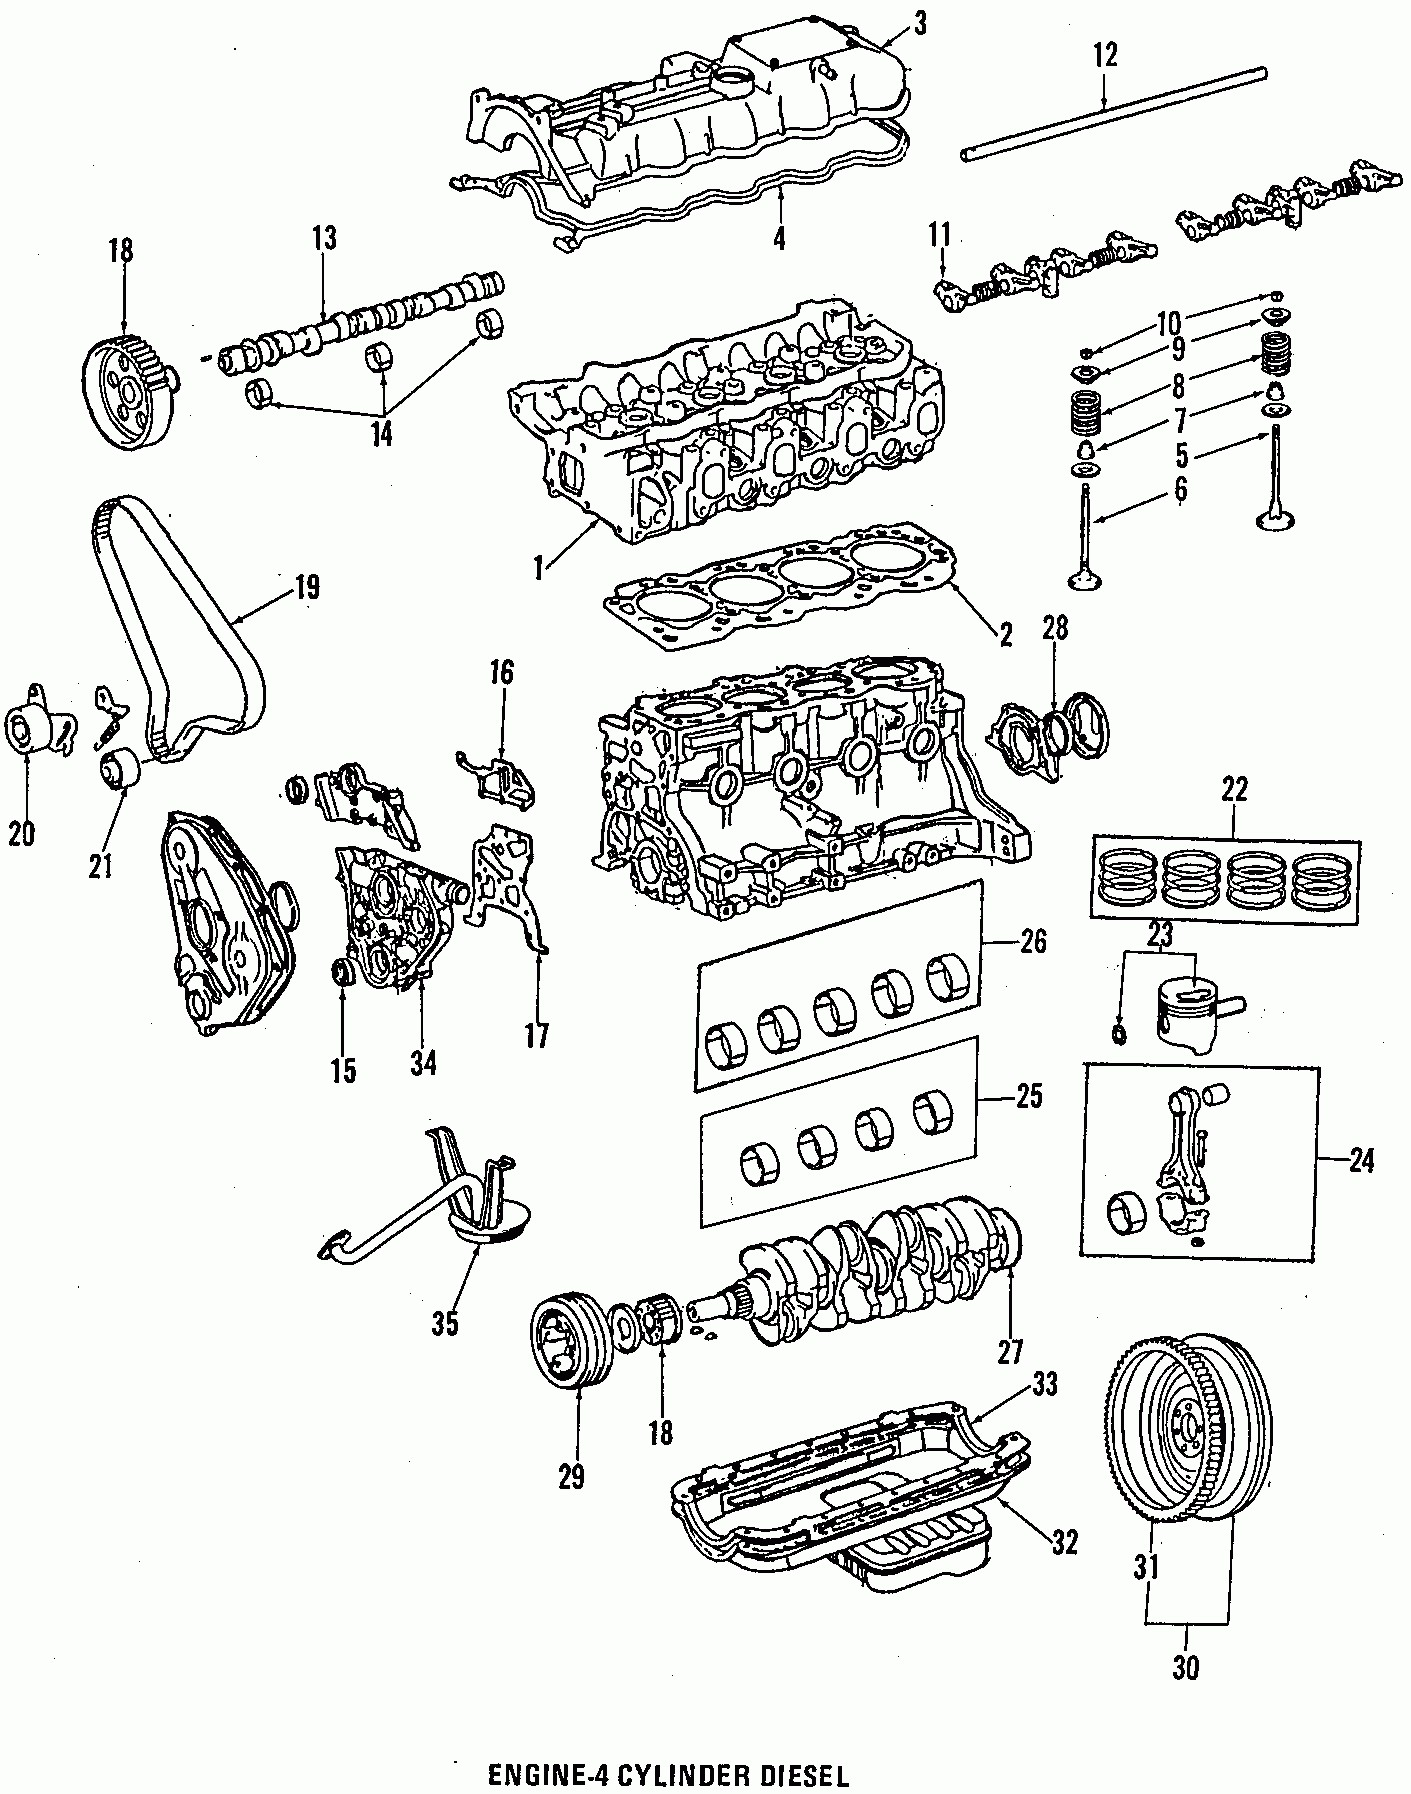 2004 Toyota Sequoia Parts Diagram 2007 Mirror Power Wiring 2005 Corolla Ce Diagrams Of